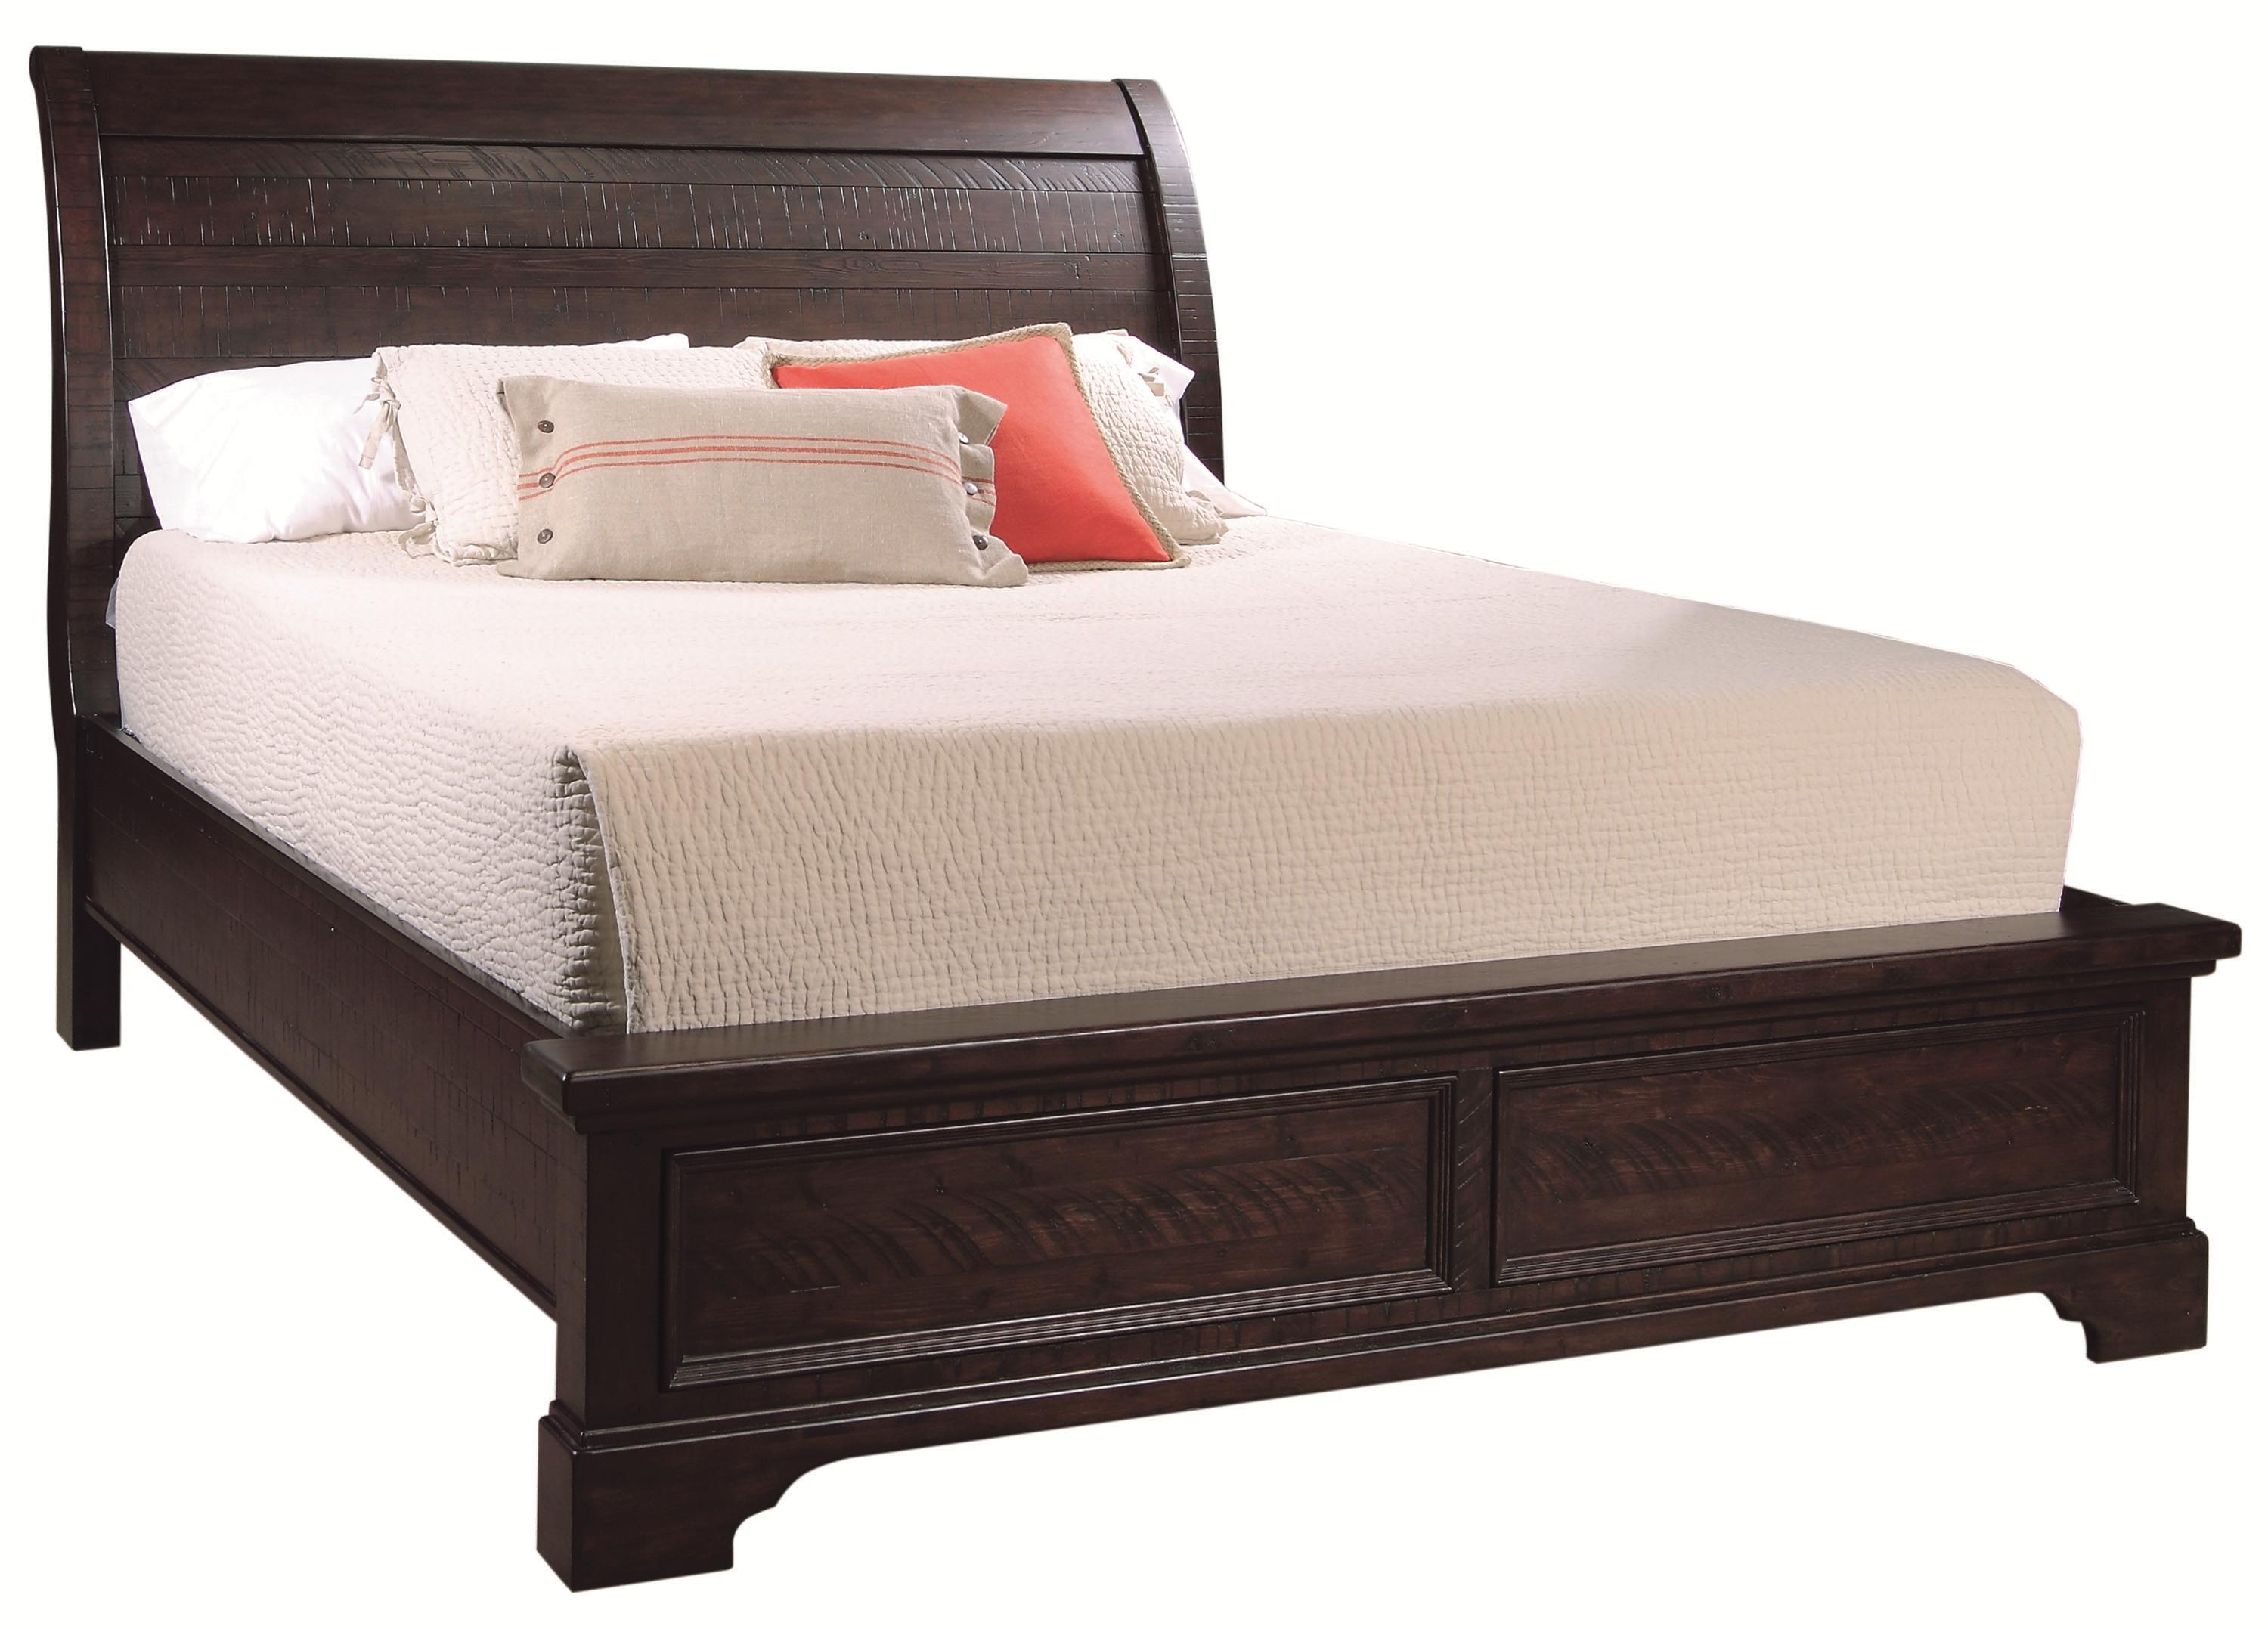 California King Size Sleigh Bed With Adjustable Bed Slats